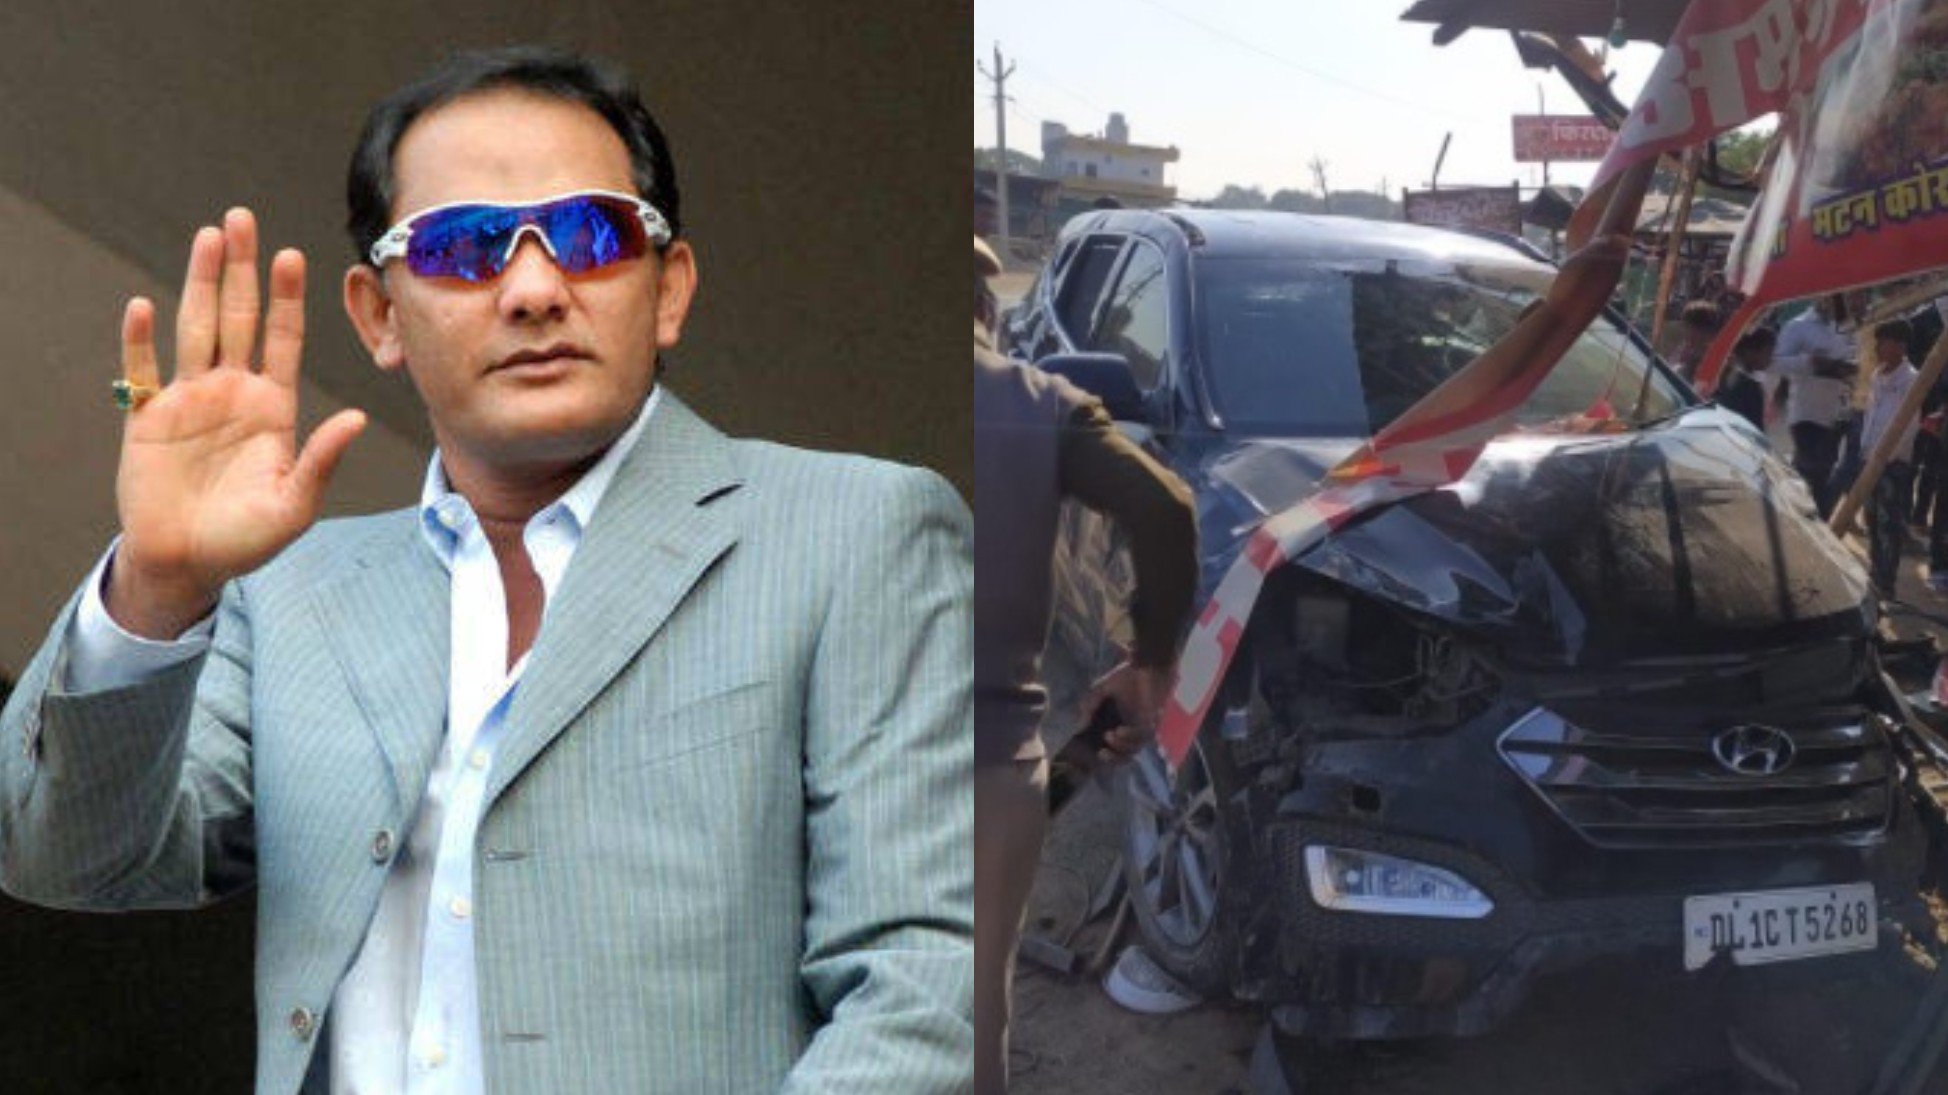 Mohammad Azharuddin escapes unhurt from car accident in Rajasthan